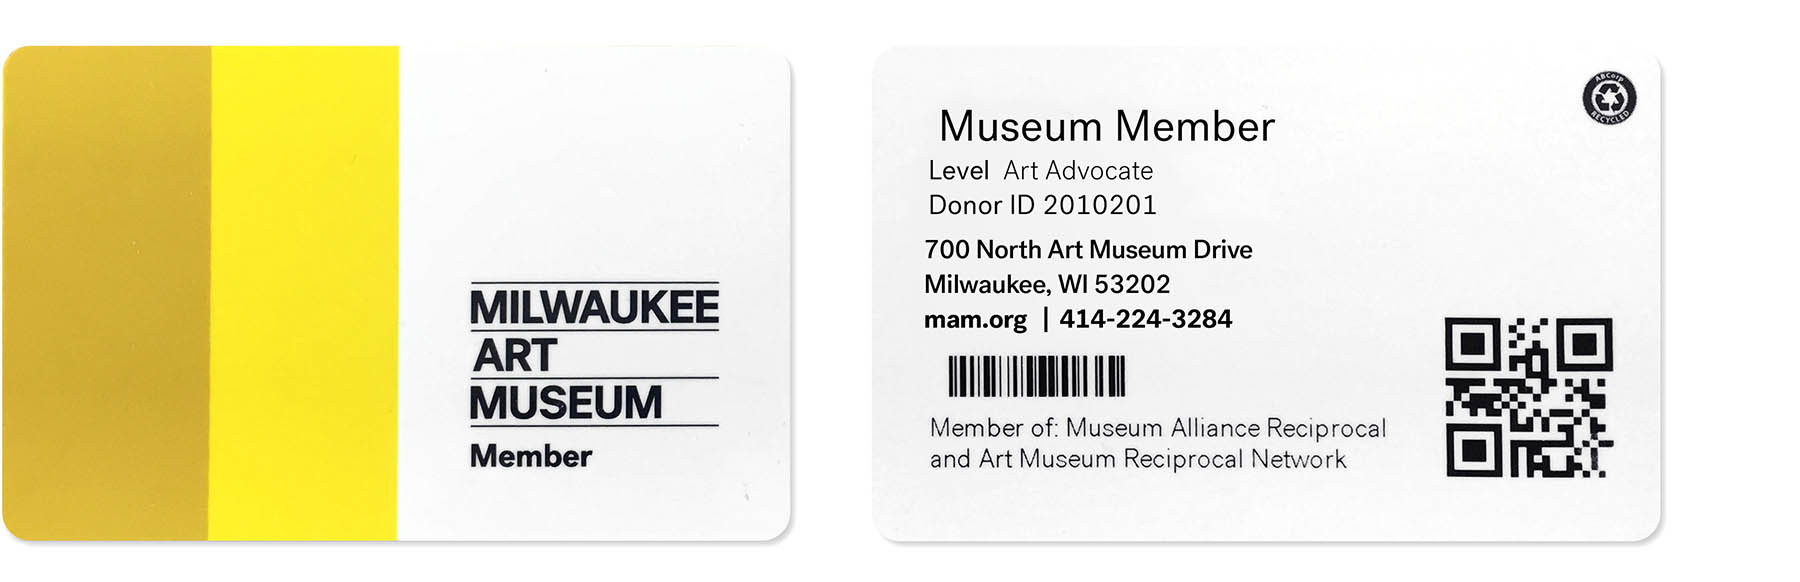 Image: Membership cards